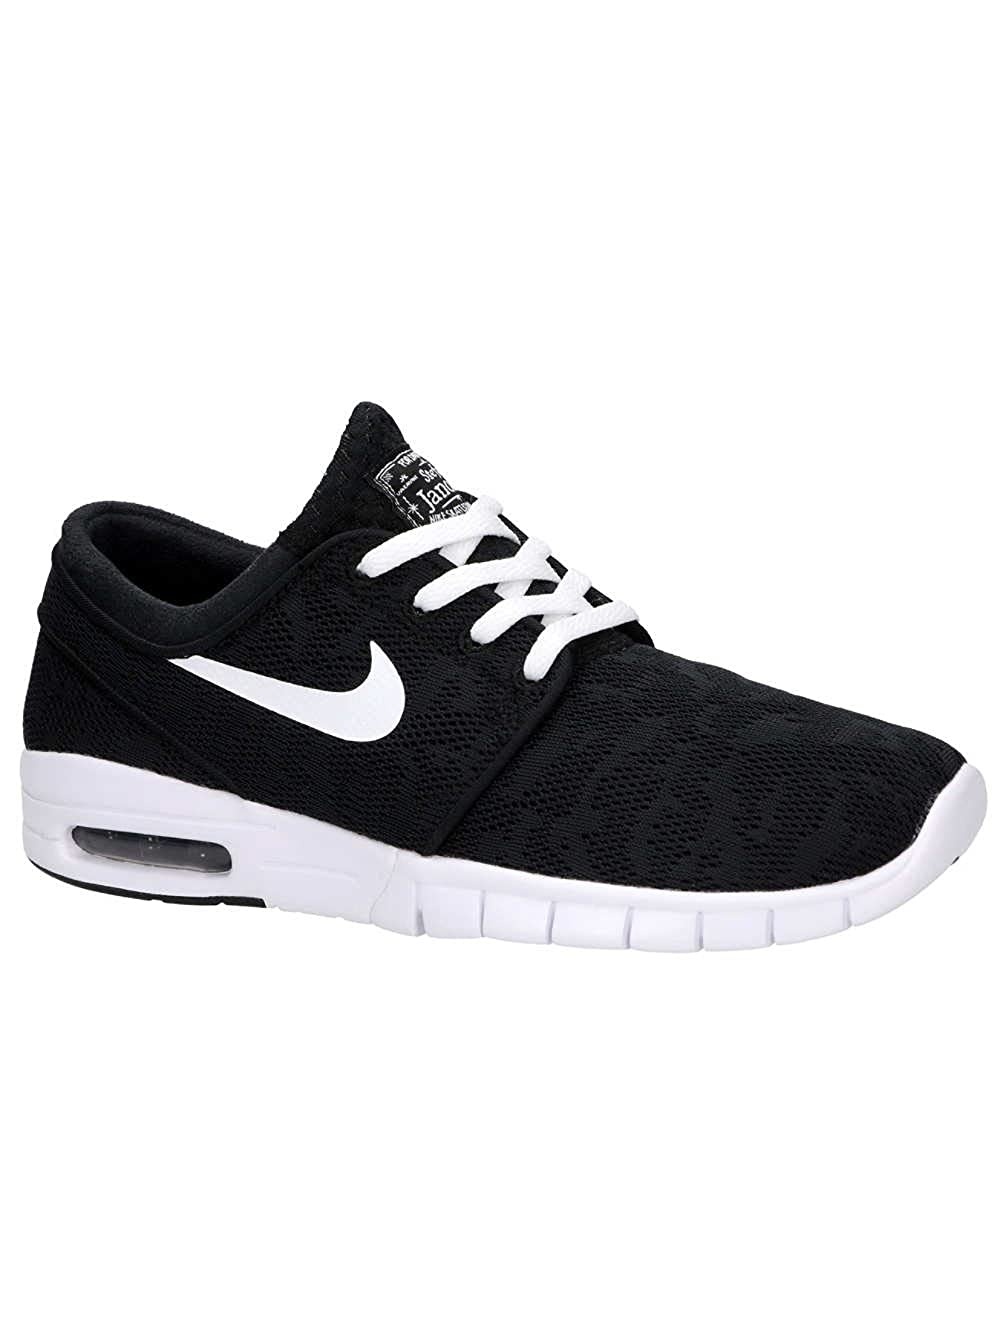 separation shoes 3cf55 9533f Nike Stefan Janoski Max, Unisex Adults  Low-Top Sneakers  Amazon.co.uk   Shoes   Bags